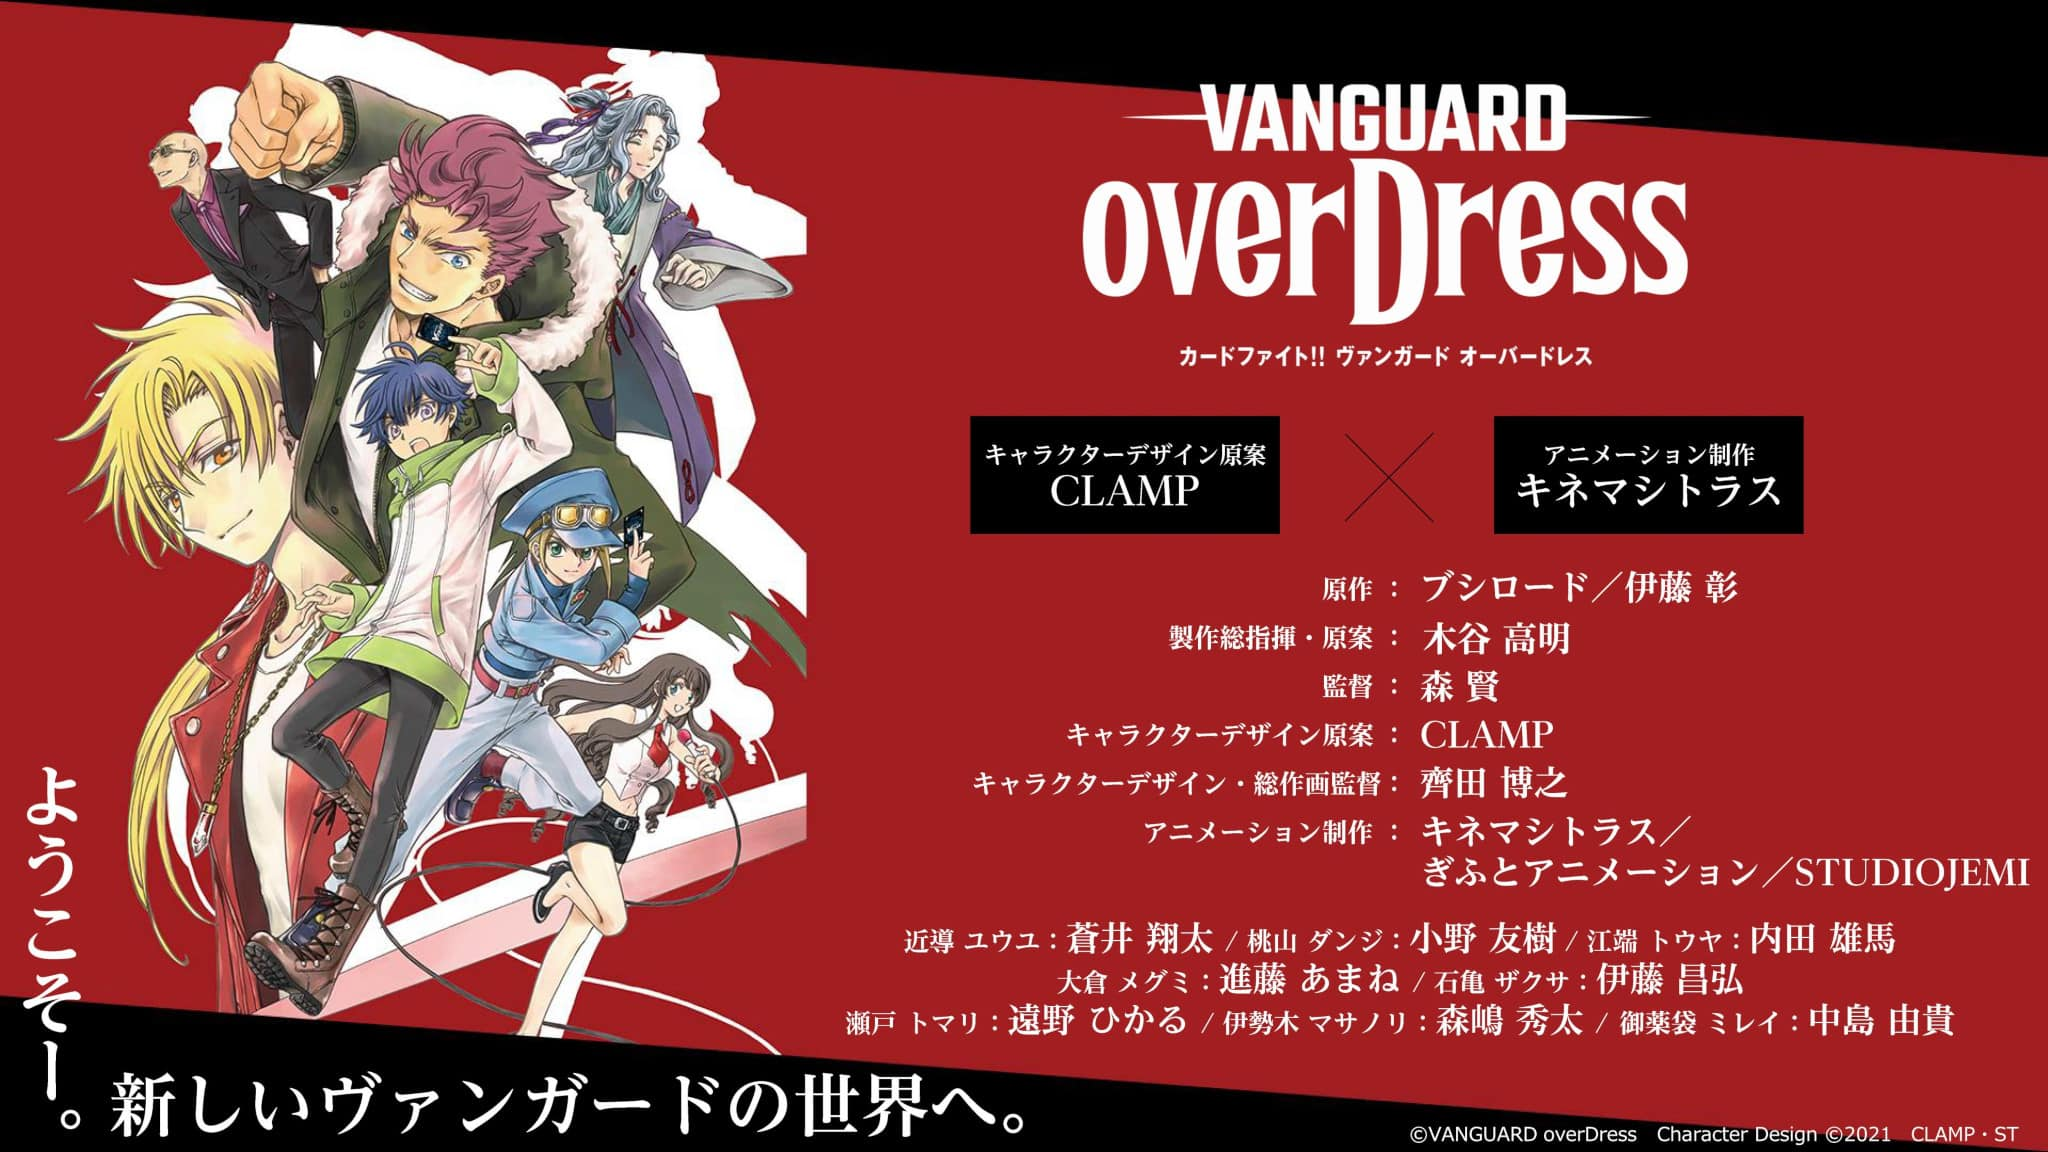 Cardfight!! Vanguard: Over Dress (2021)(TV Series)(Ongoing)